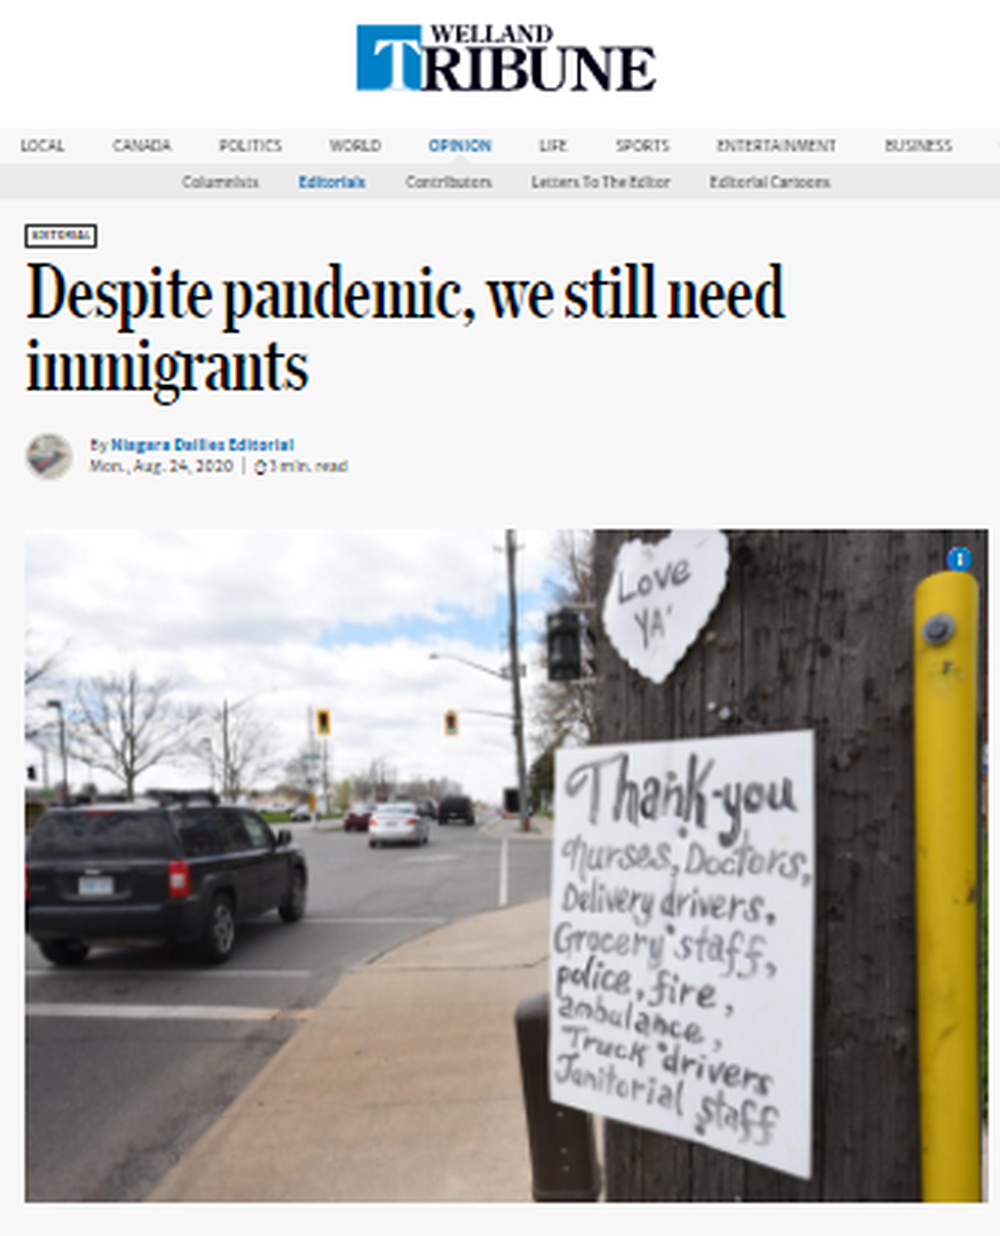 Despite-pandemic-we-still-need-immigrants-wellandtribune-ca.png